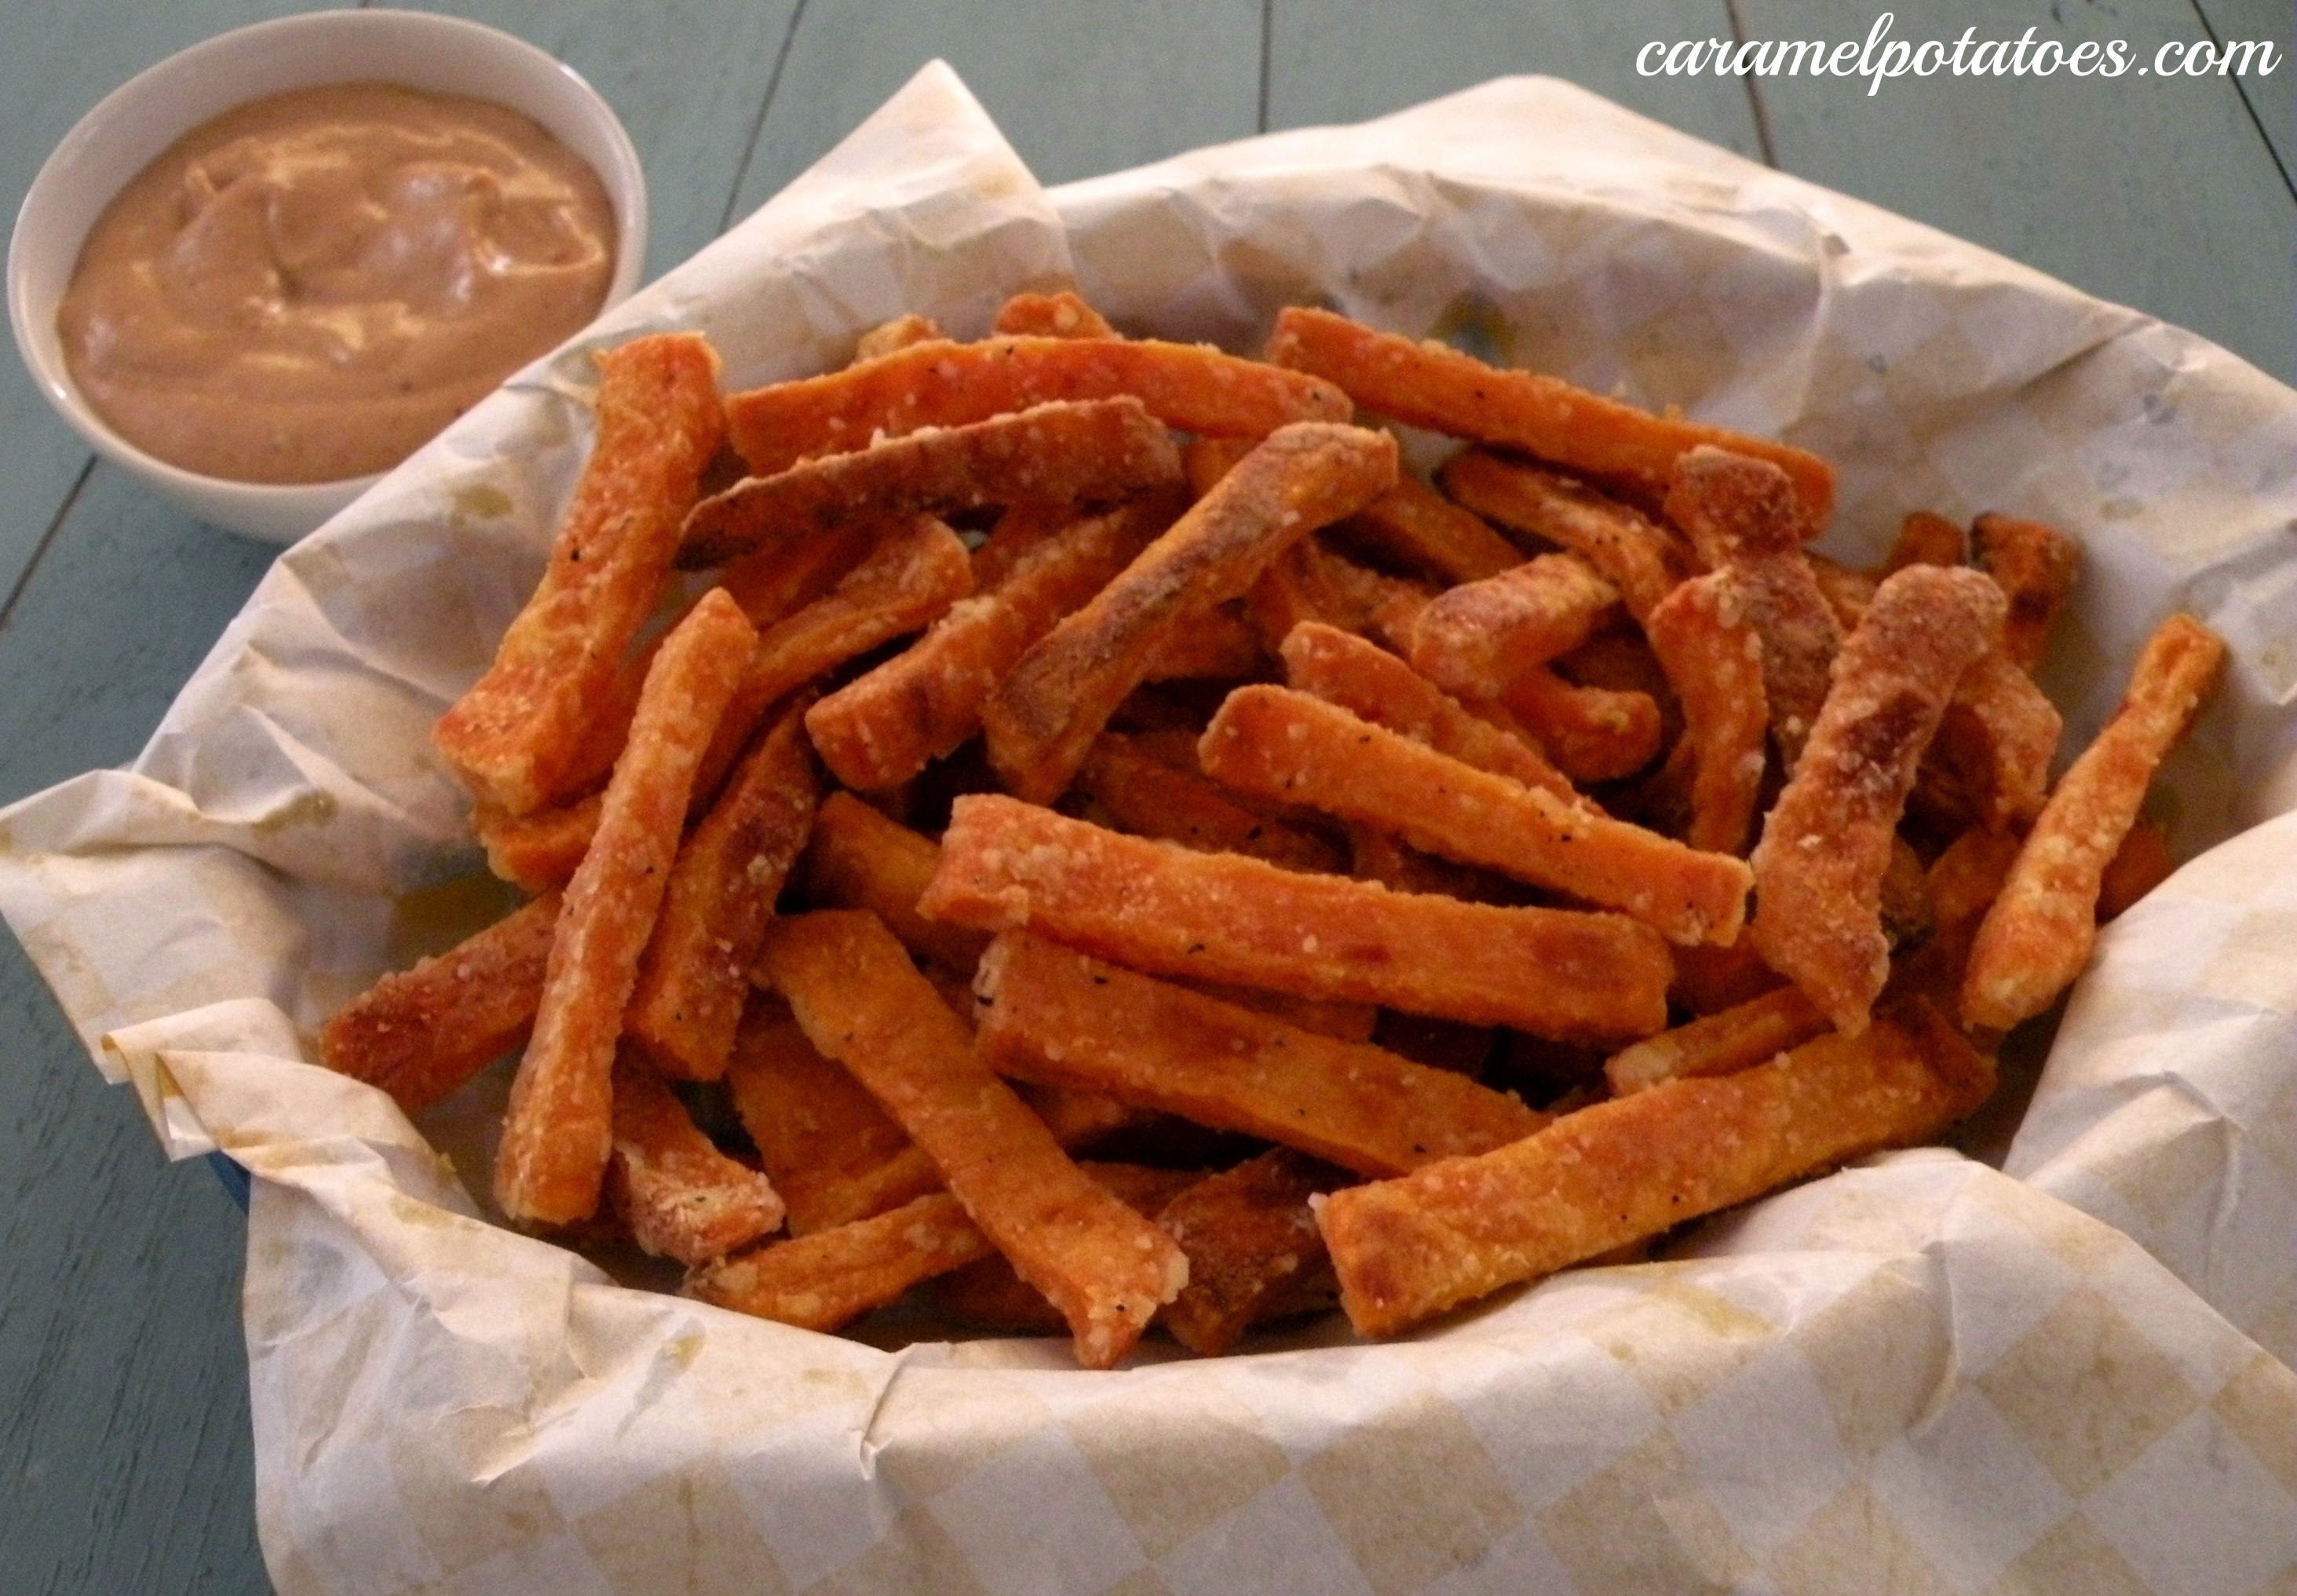 Caramel Potatoes » Oven Baked Sweet Potato Fries